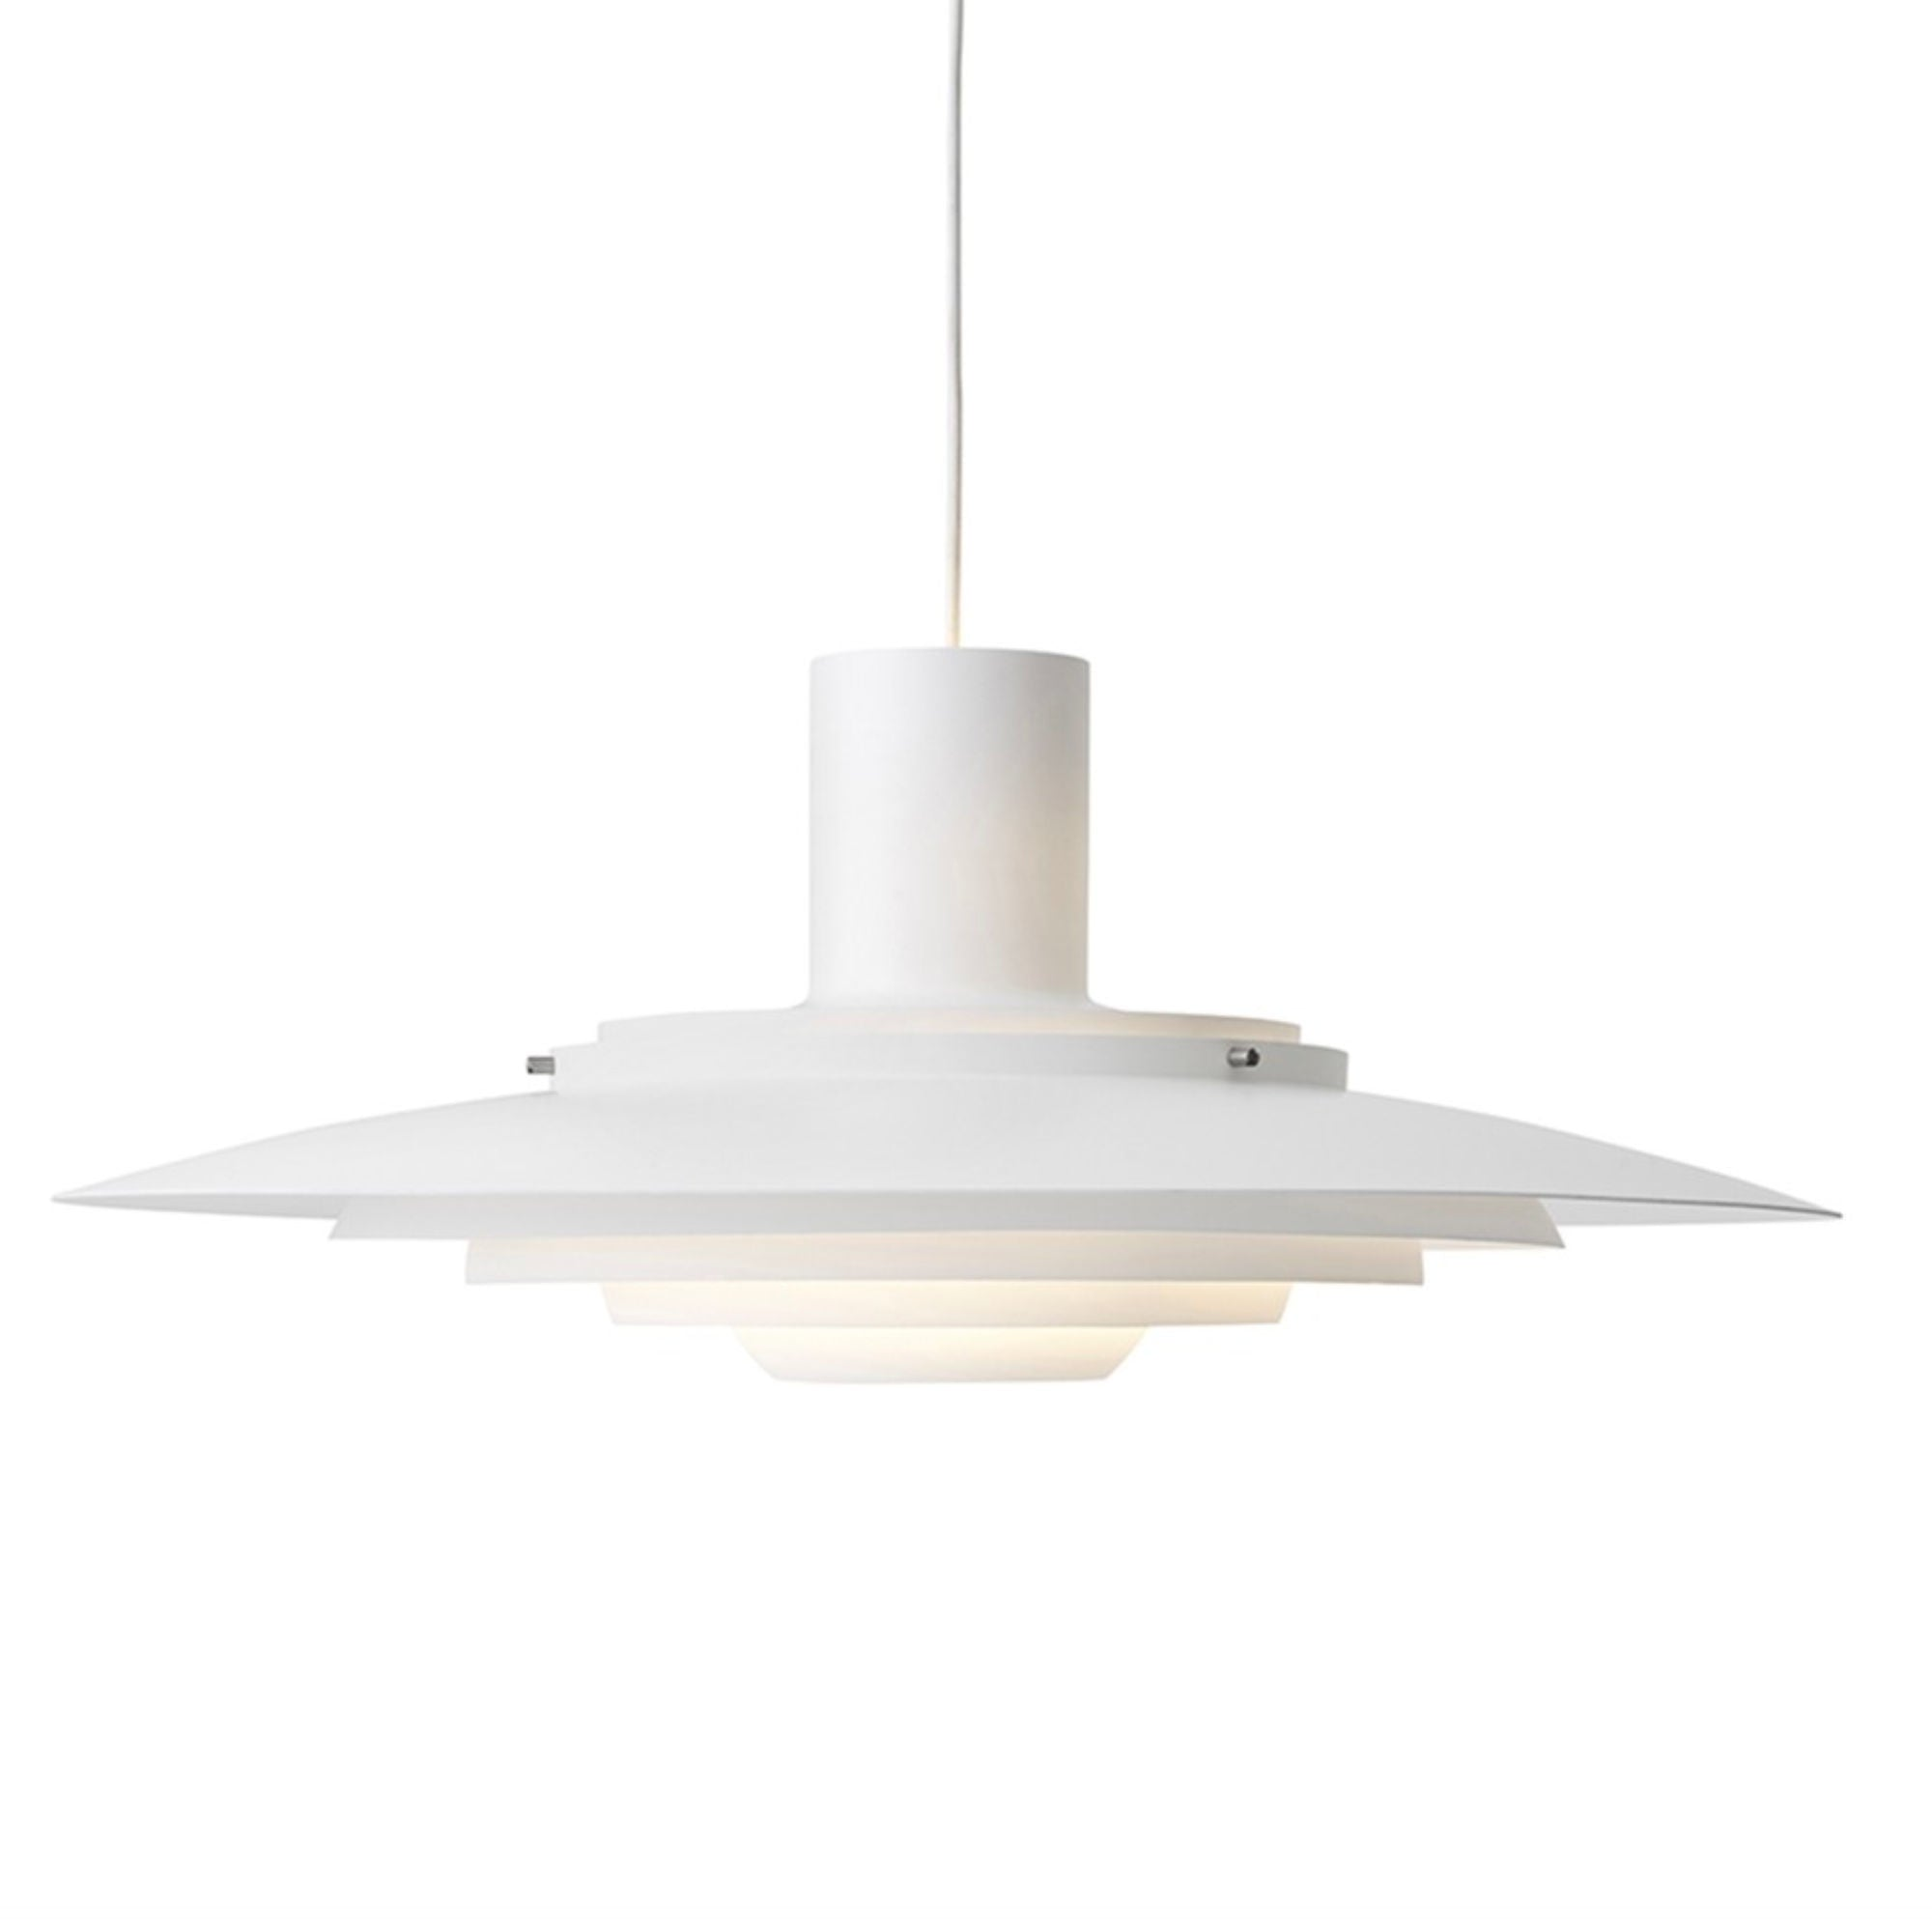 &Tradition P376 KF2 Pendant Lamp , Matt White